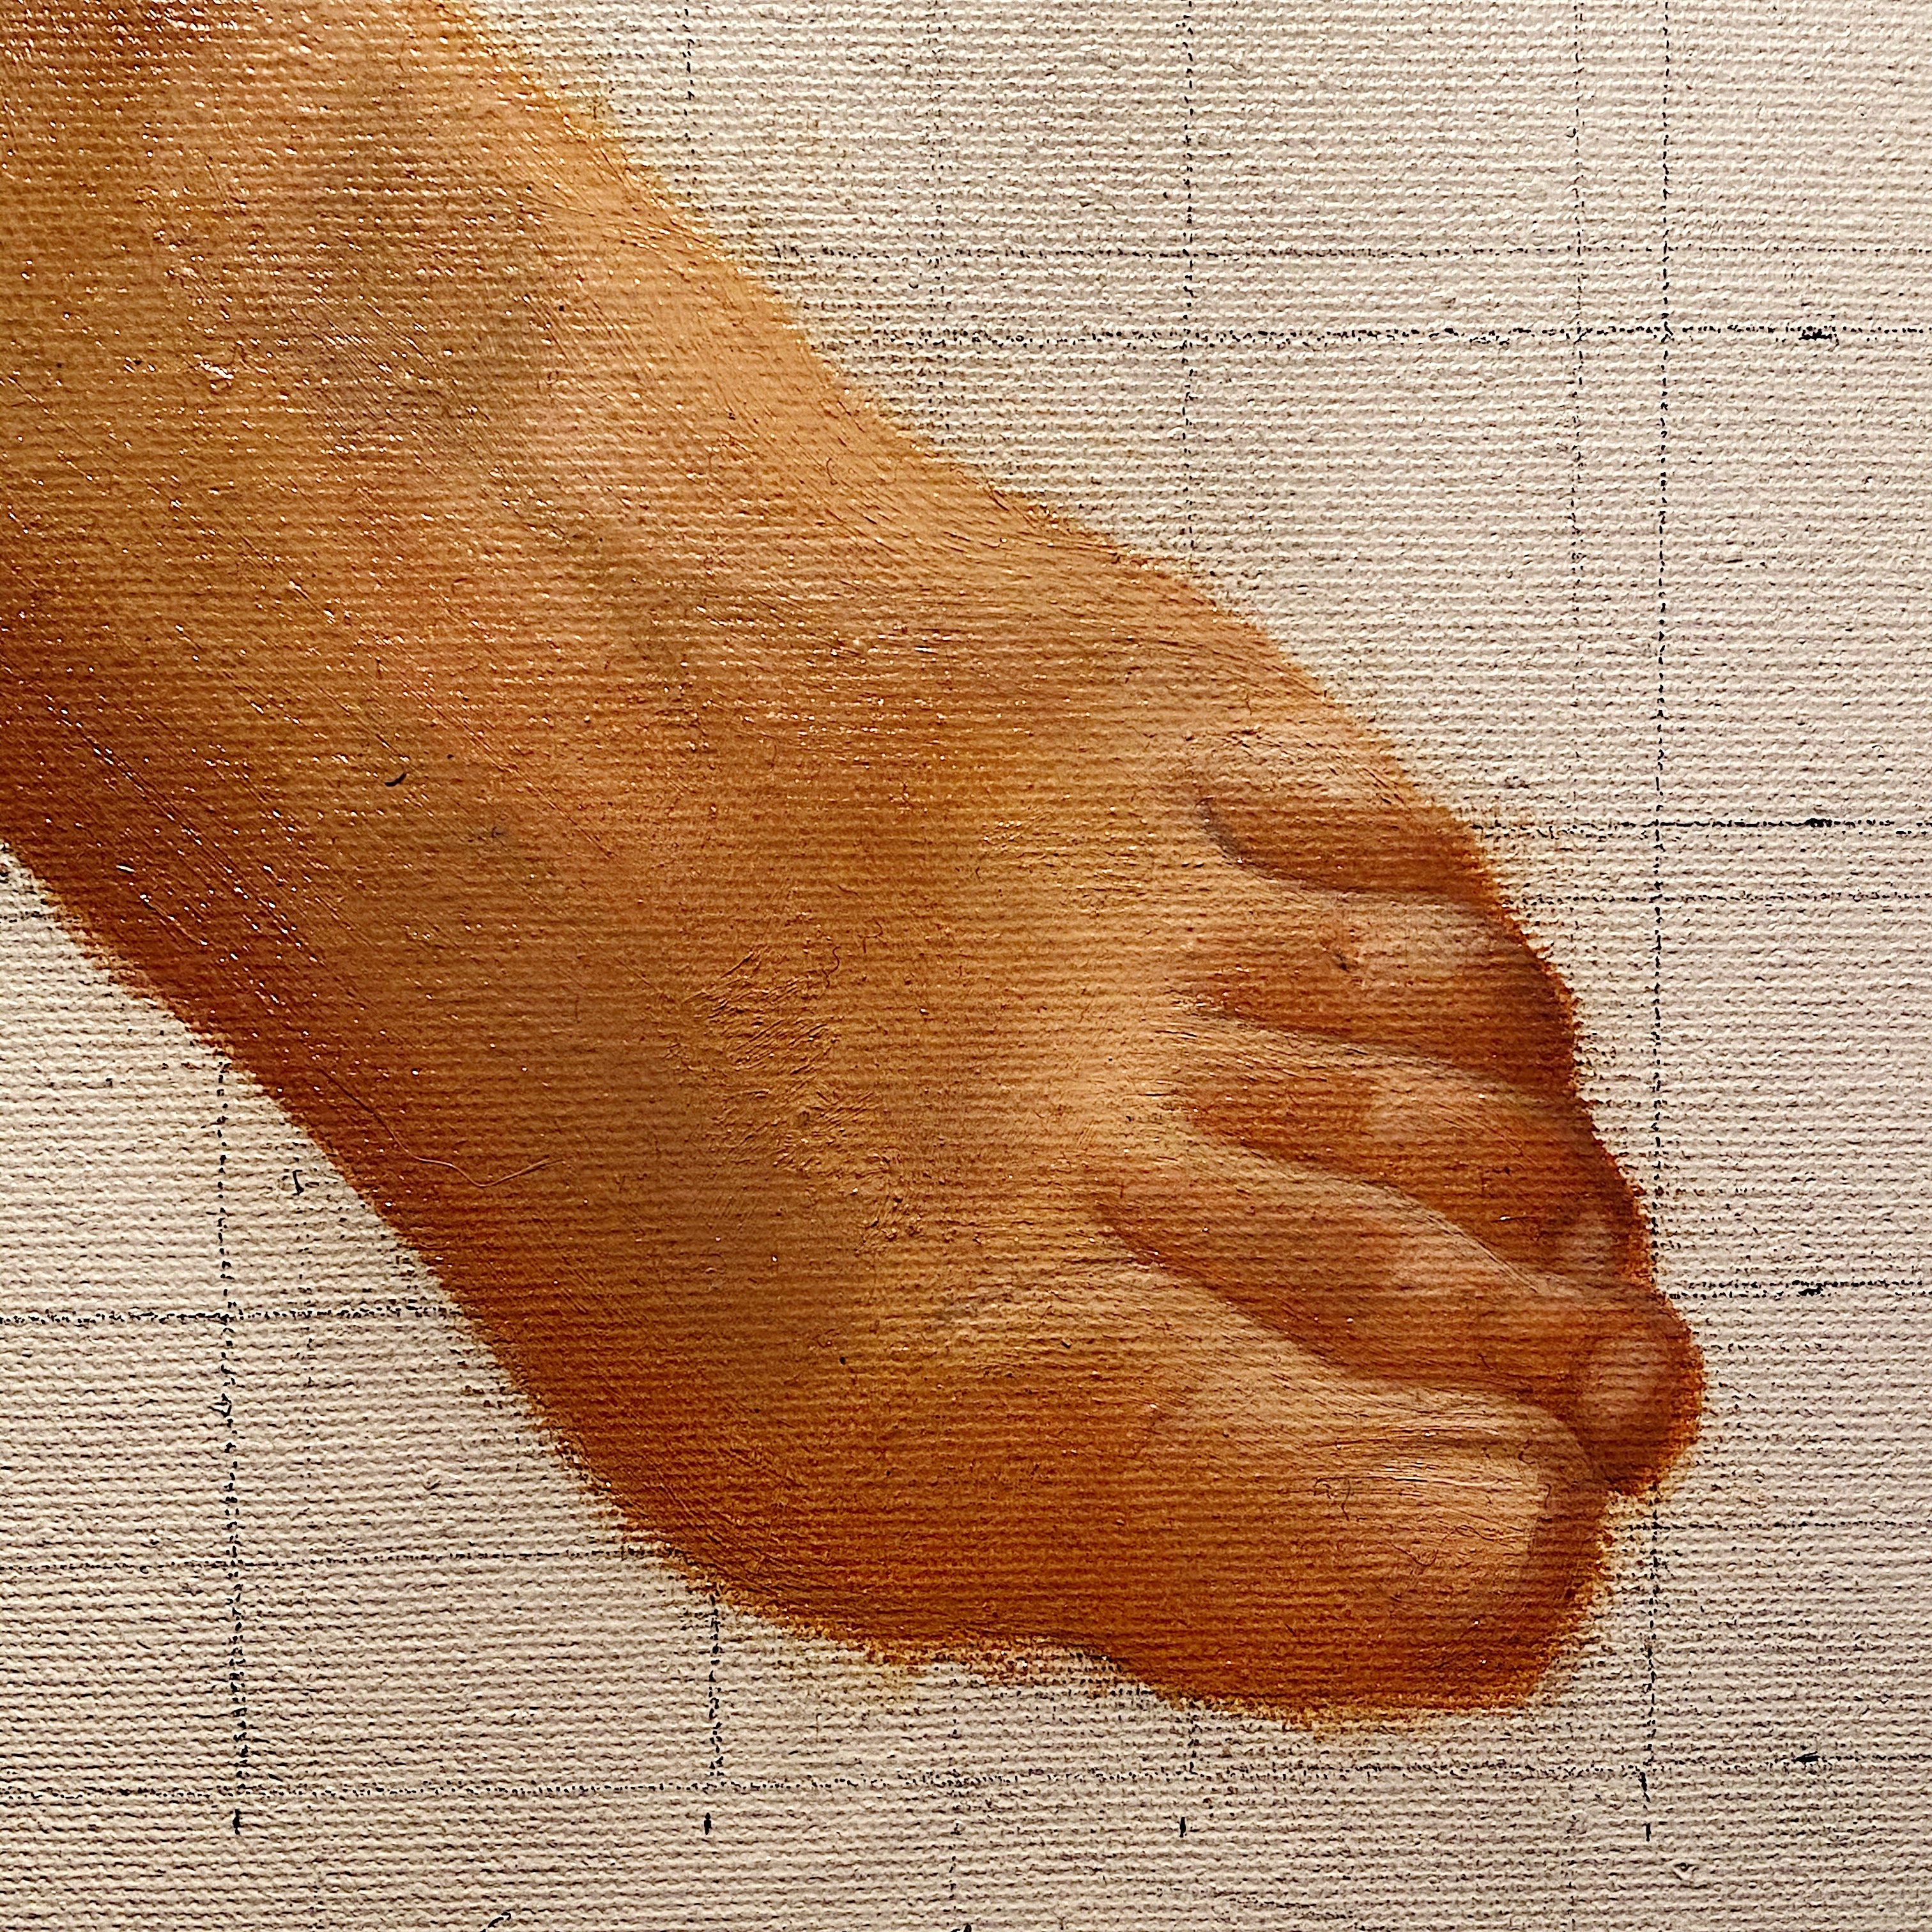 Unusual Vintage Painting of Bare Foot - 1979 - Weird Art - Rare Underground Fetish Paintings - Unframed 1970s Artwork - Feet  - Mystery Weirdo